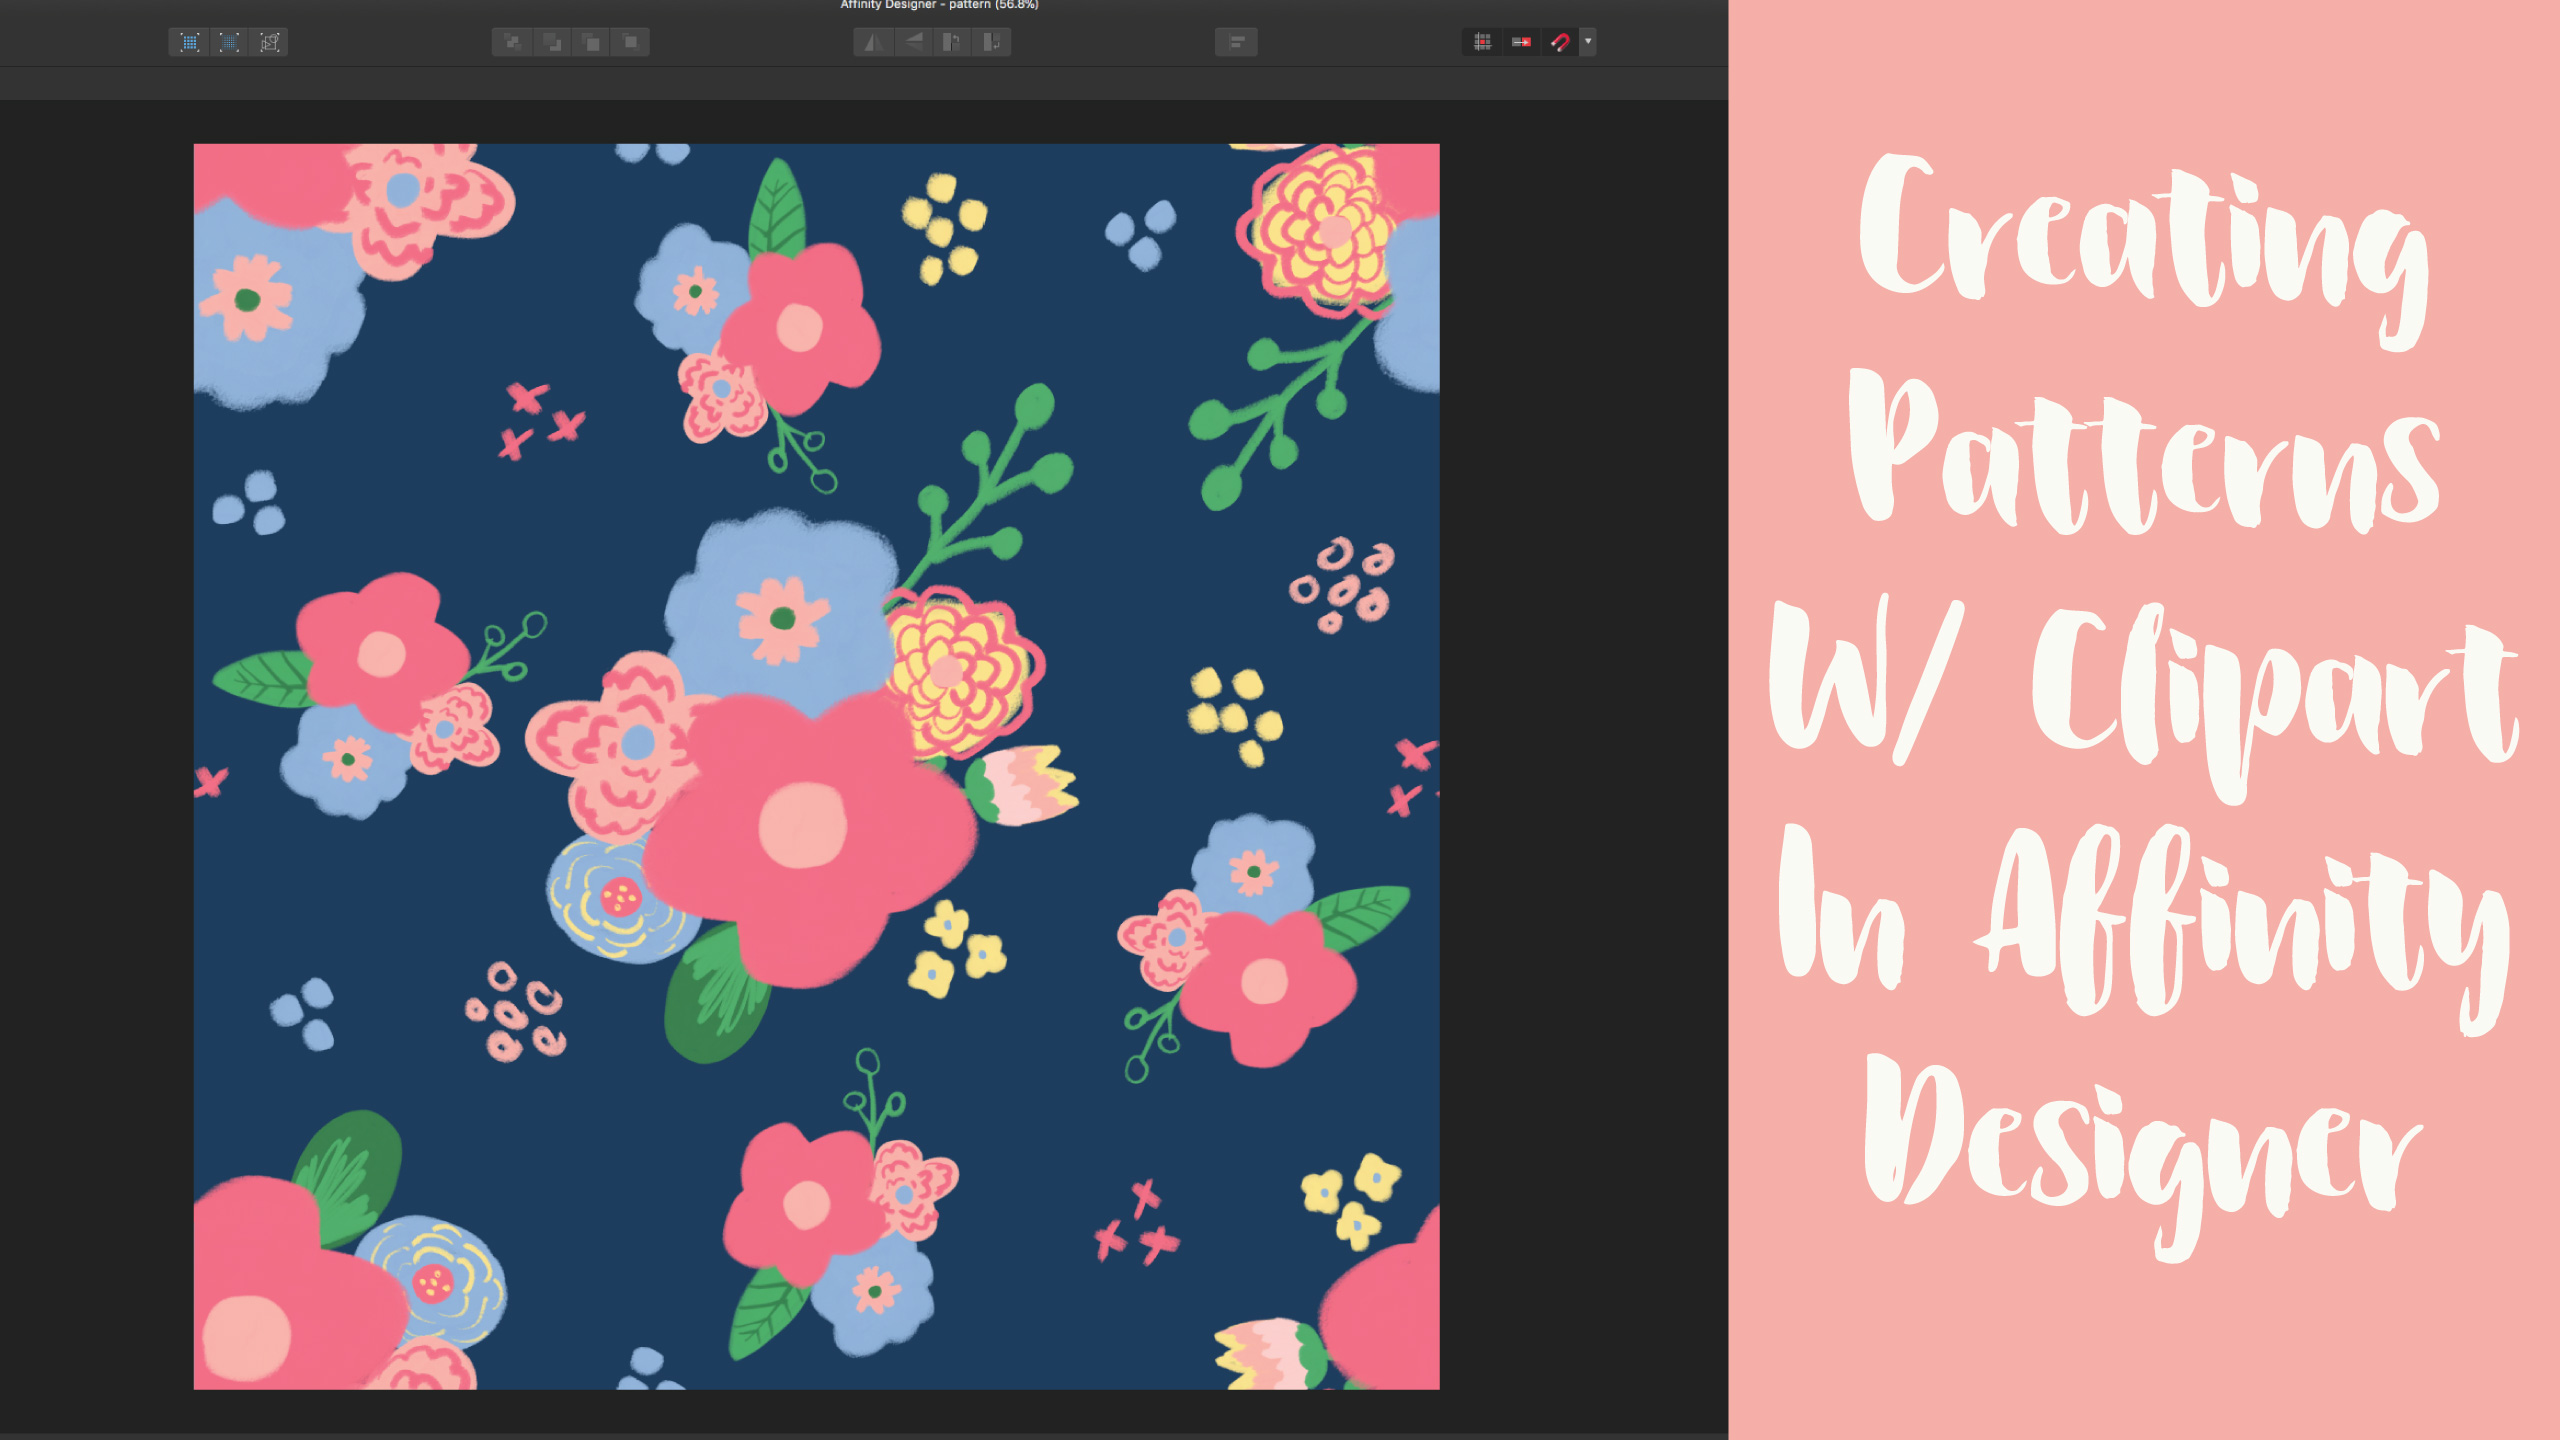 Creating Patterns With Clipart In Affinity Designer..